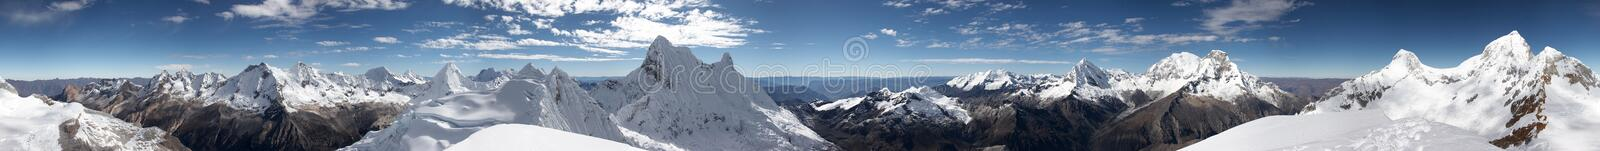 Summit panorama stock images